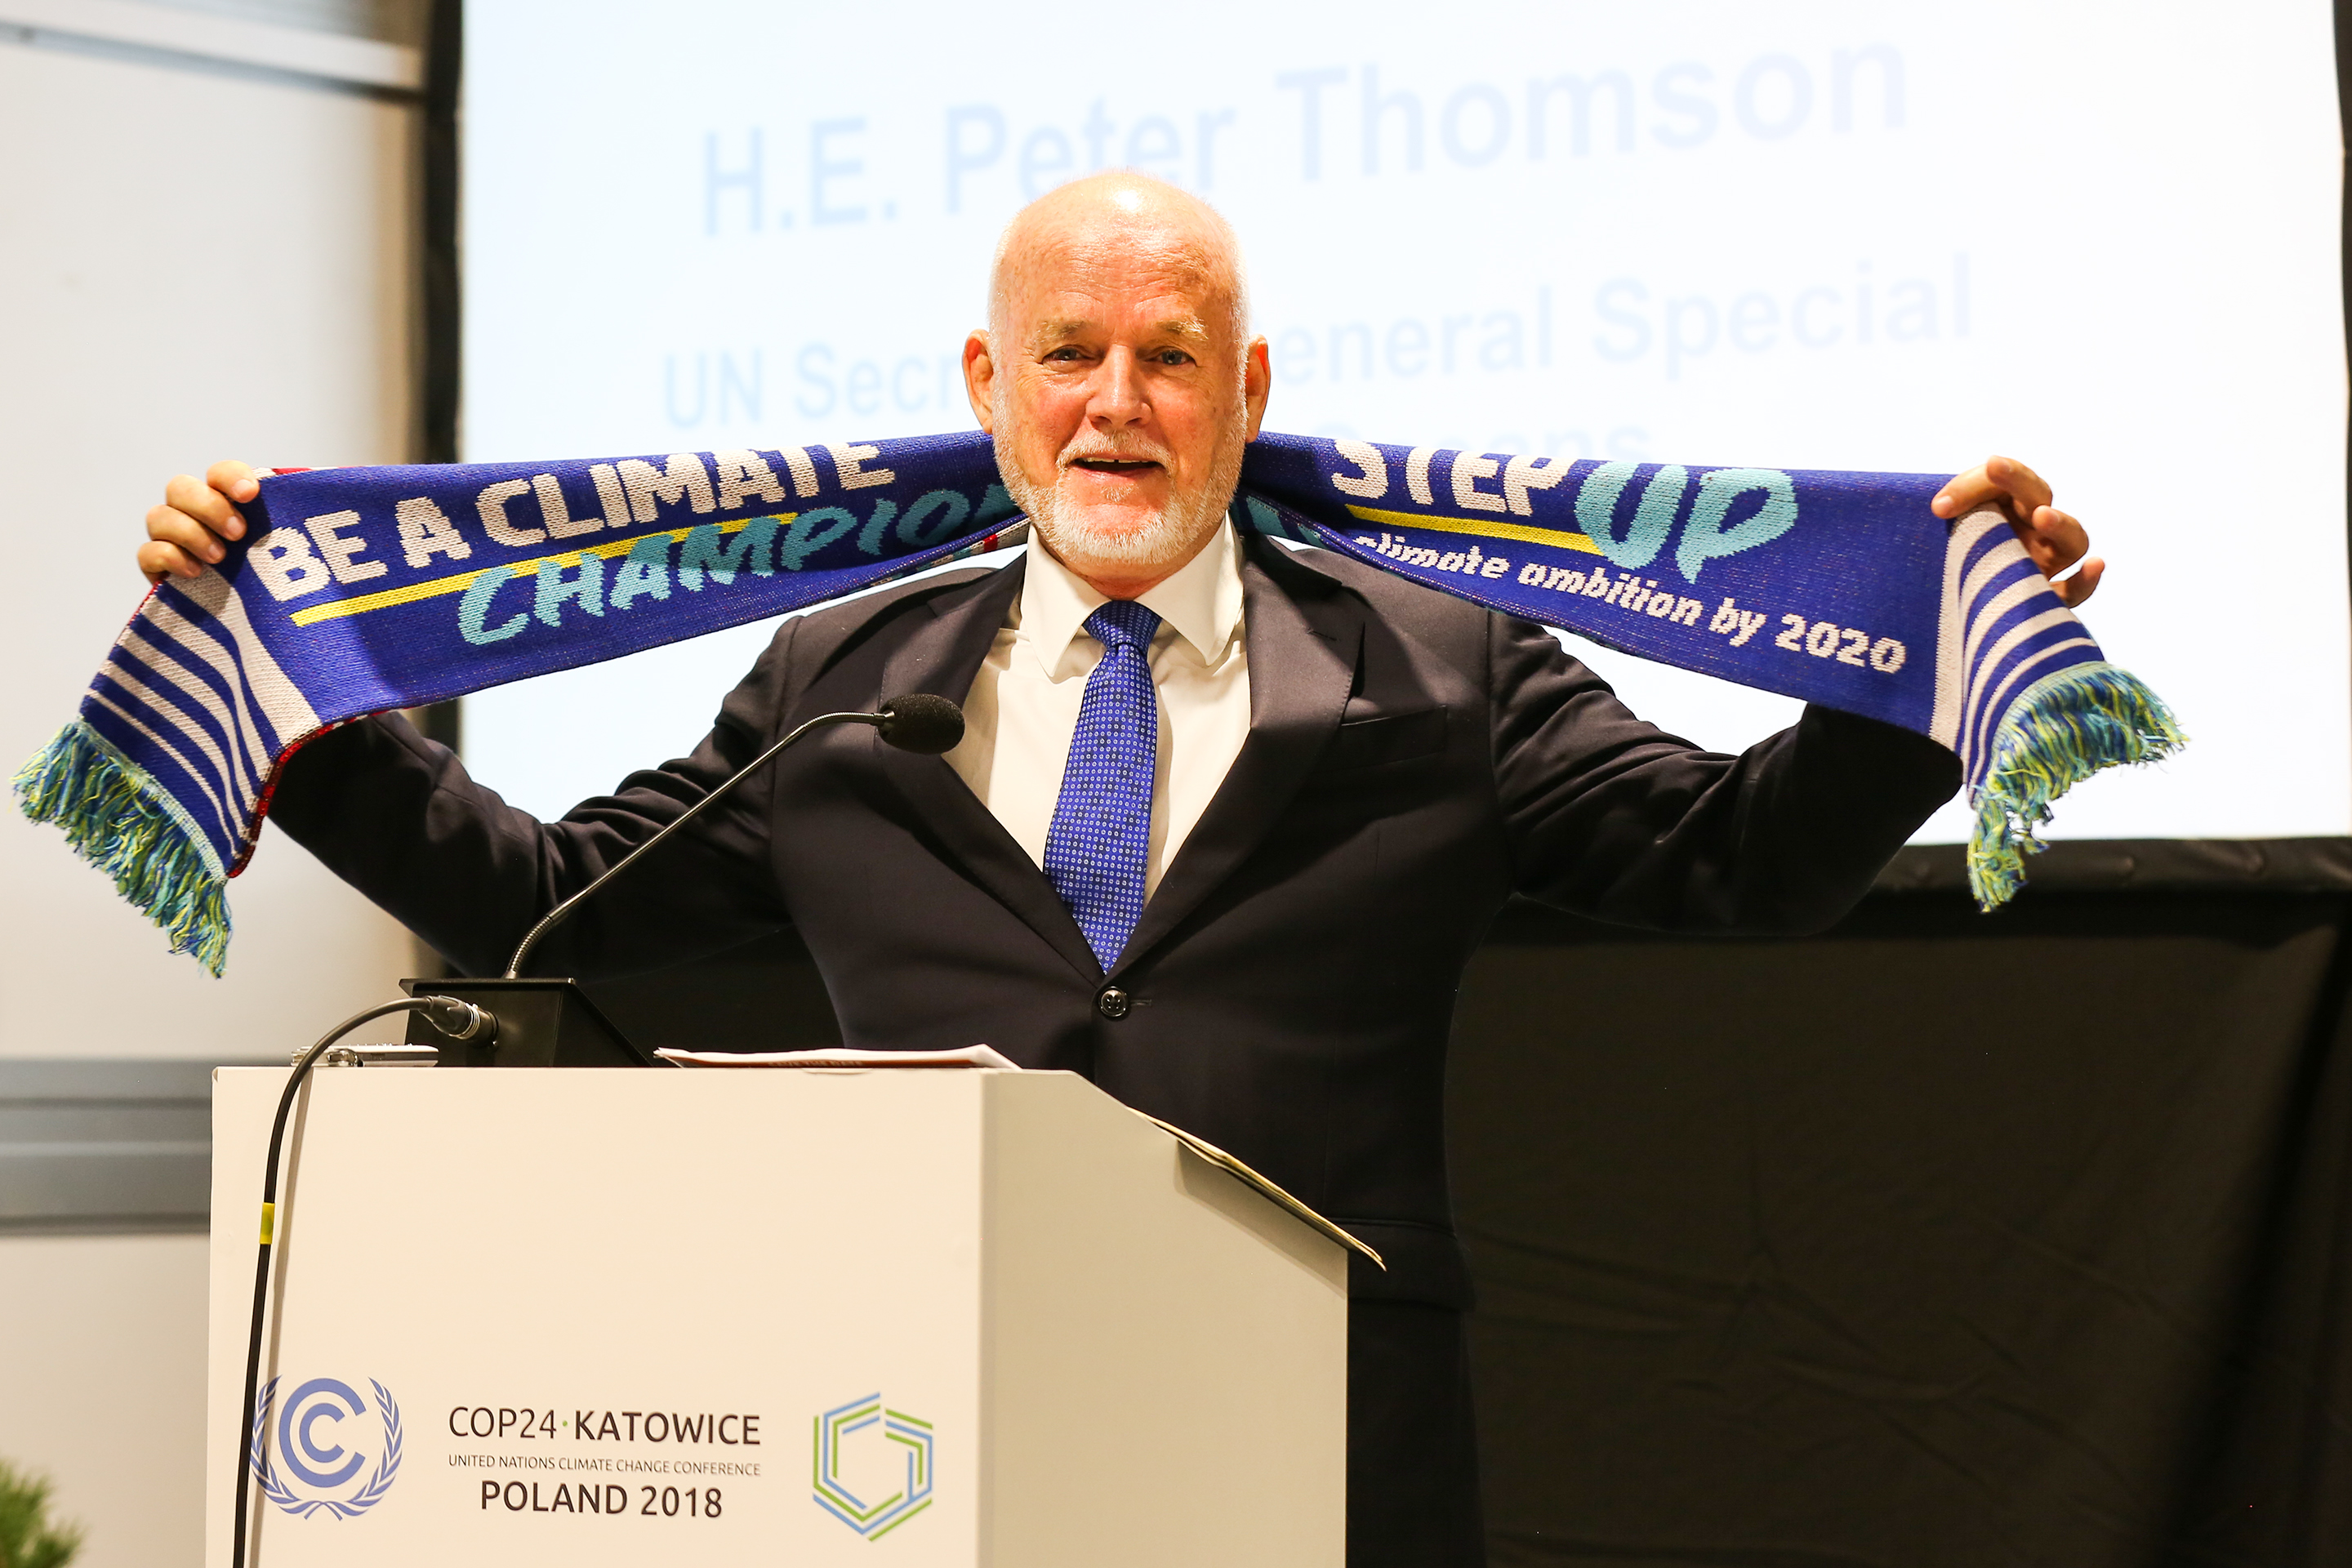 <p>Peter Thomson, UN Special Envoy for the Oceans, displays COP24 scarf urging countries to step up climate ambition by 2020. Photo by IISD</p>